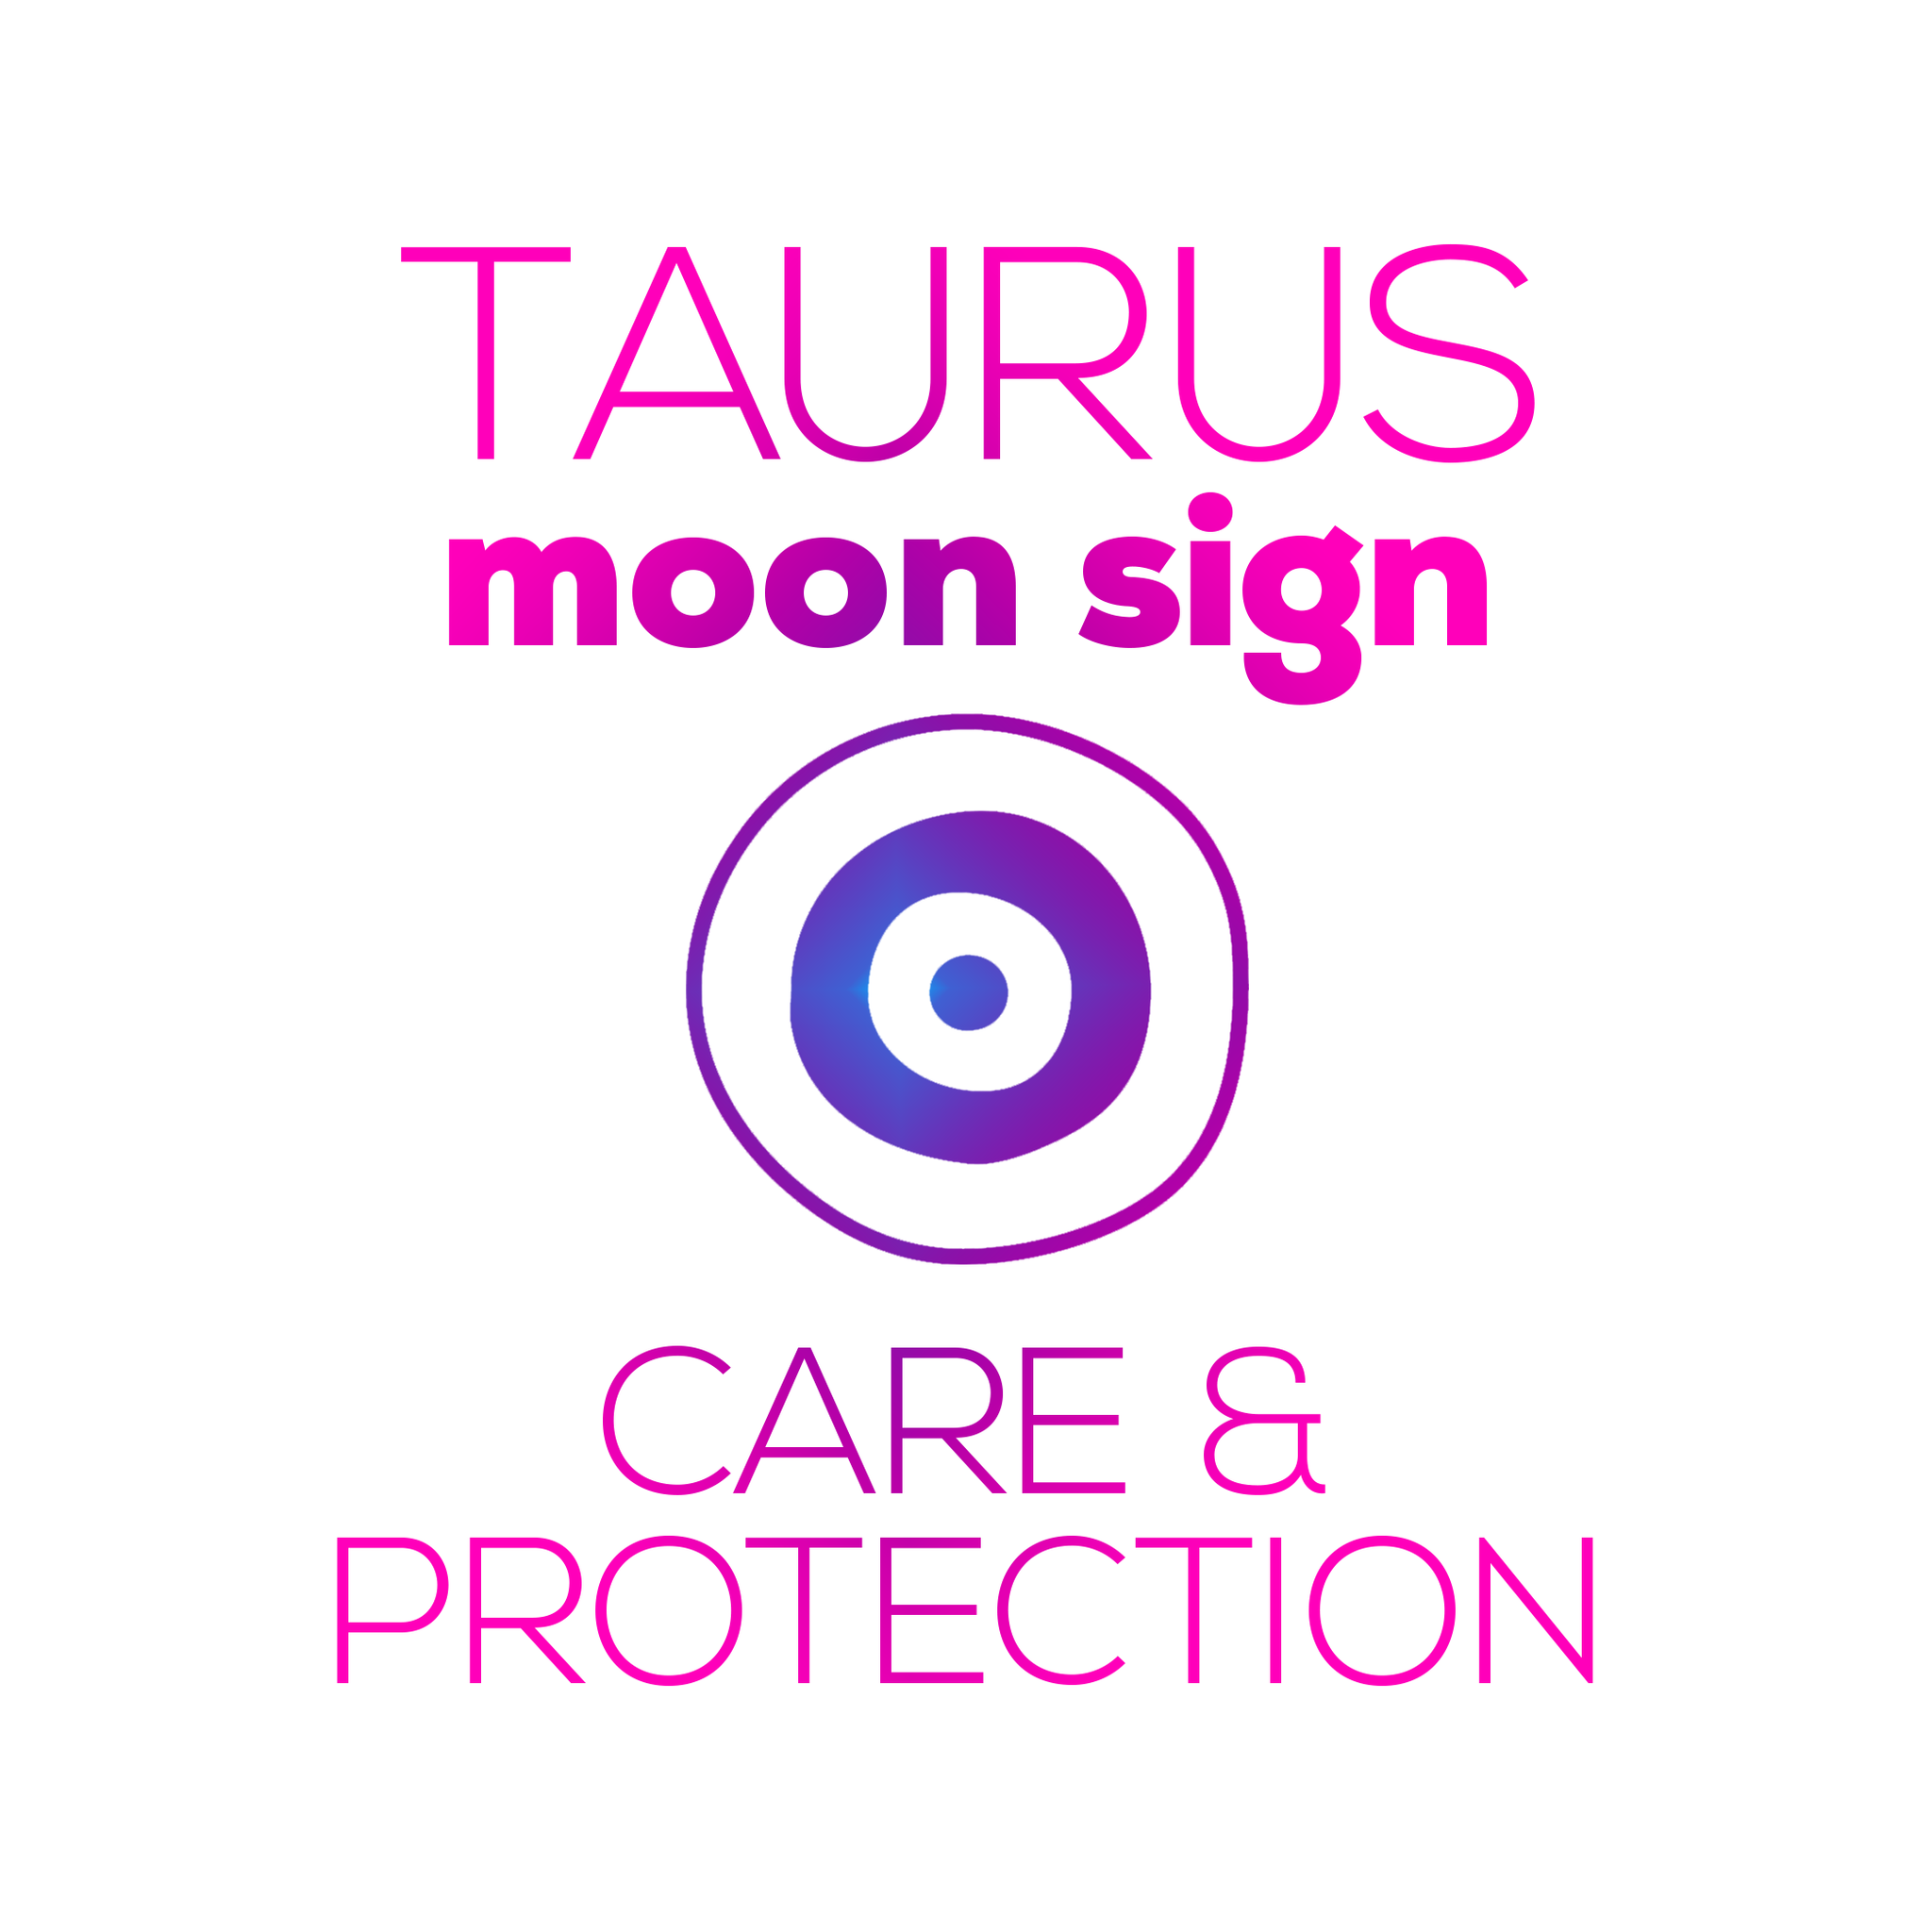 Care + Protection for Your Moon Sign - Taurus